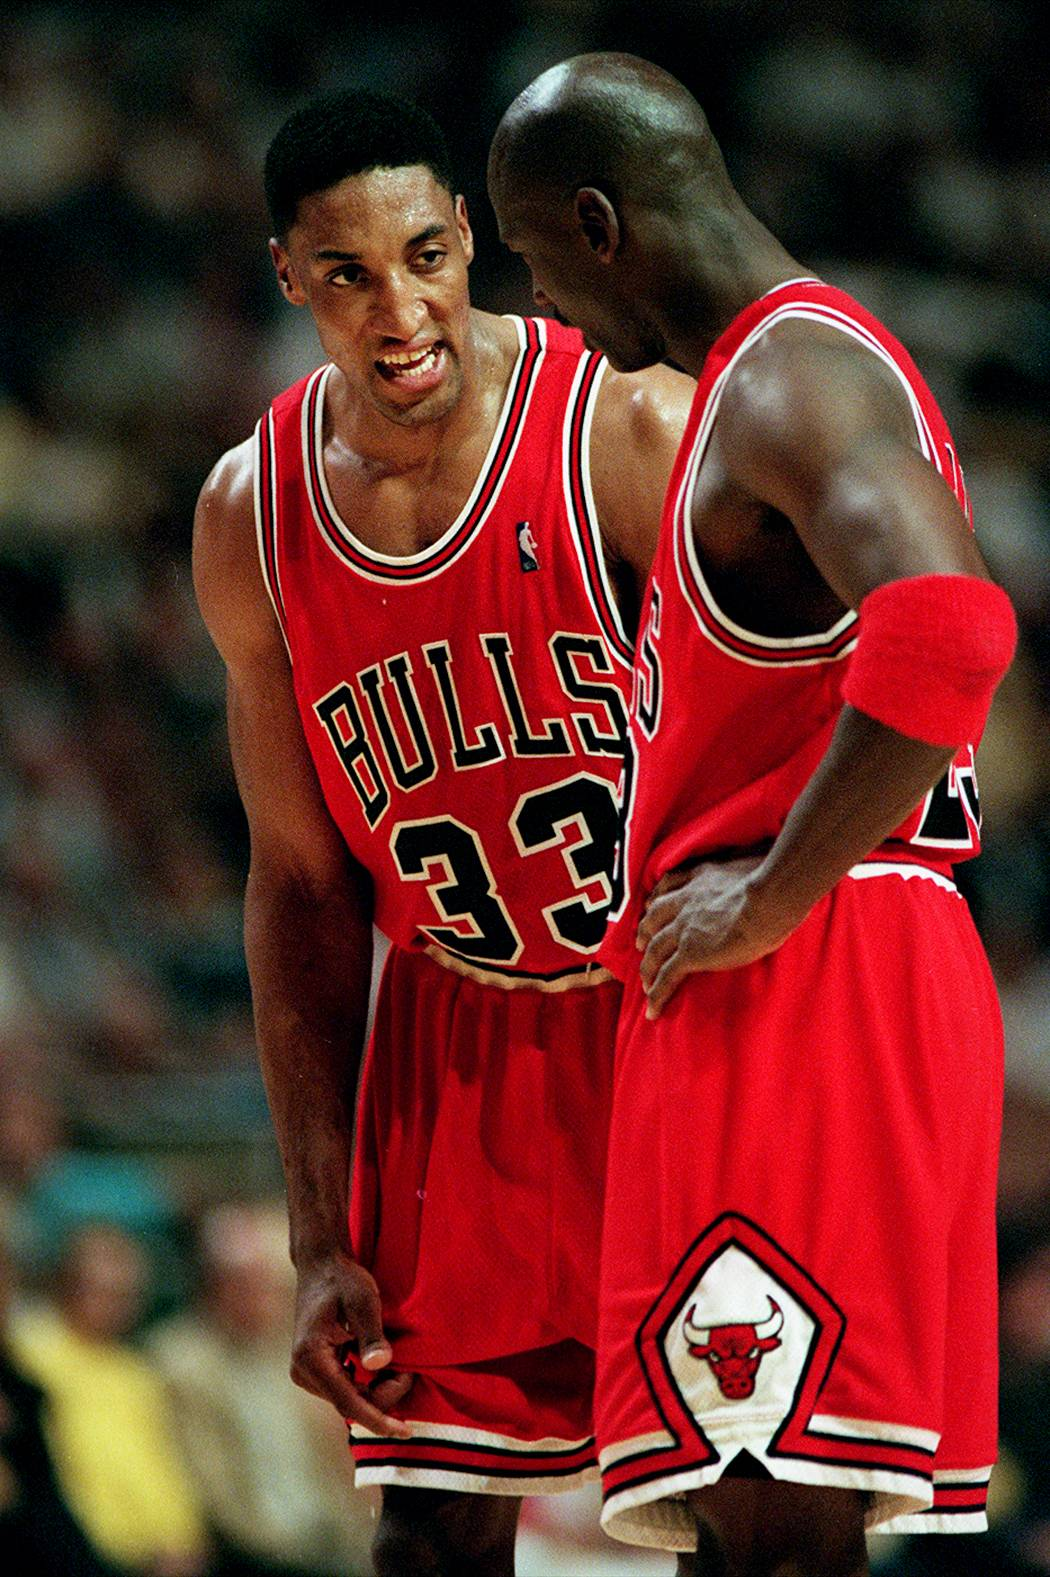 Michael Jordan's Bulls team would be able to handle LeBron James and the Miami Heat, says Mike North, but don't even bother to compare James to Jordan.